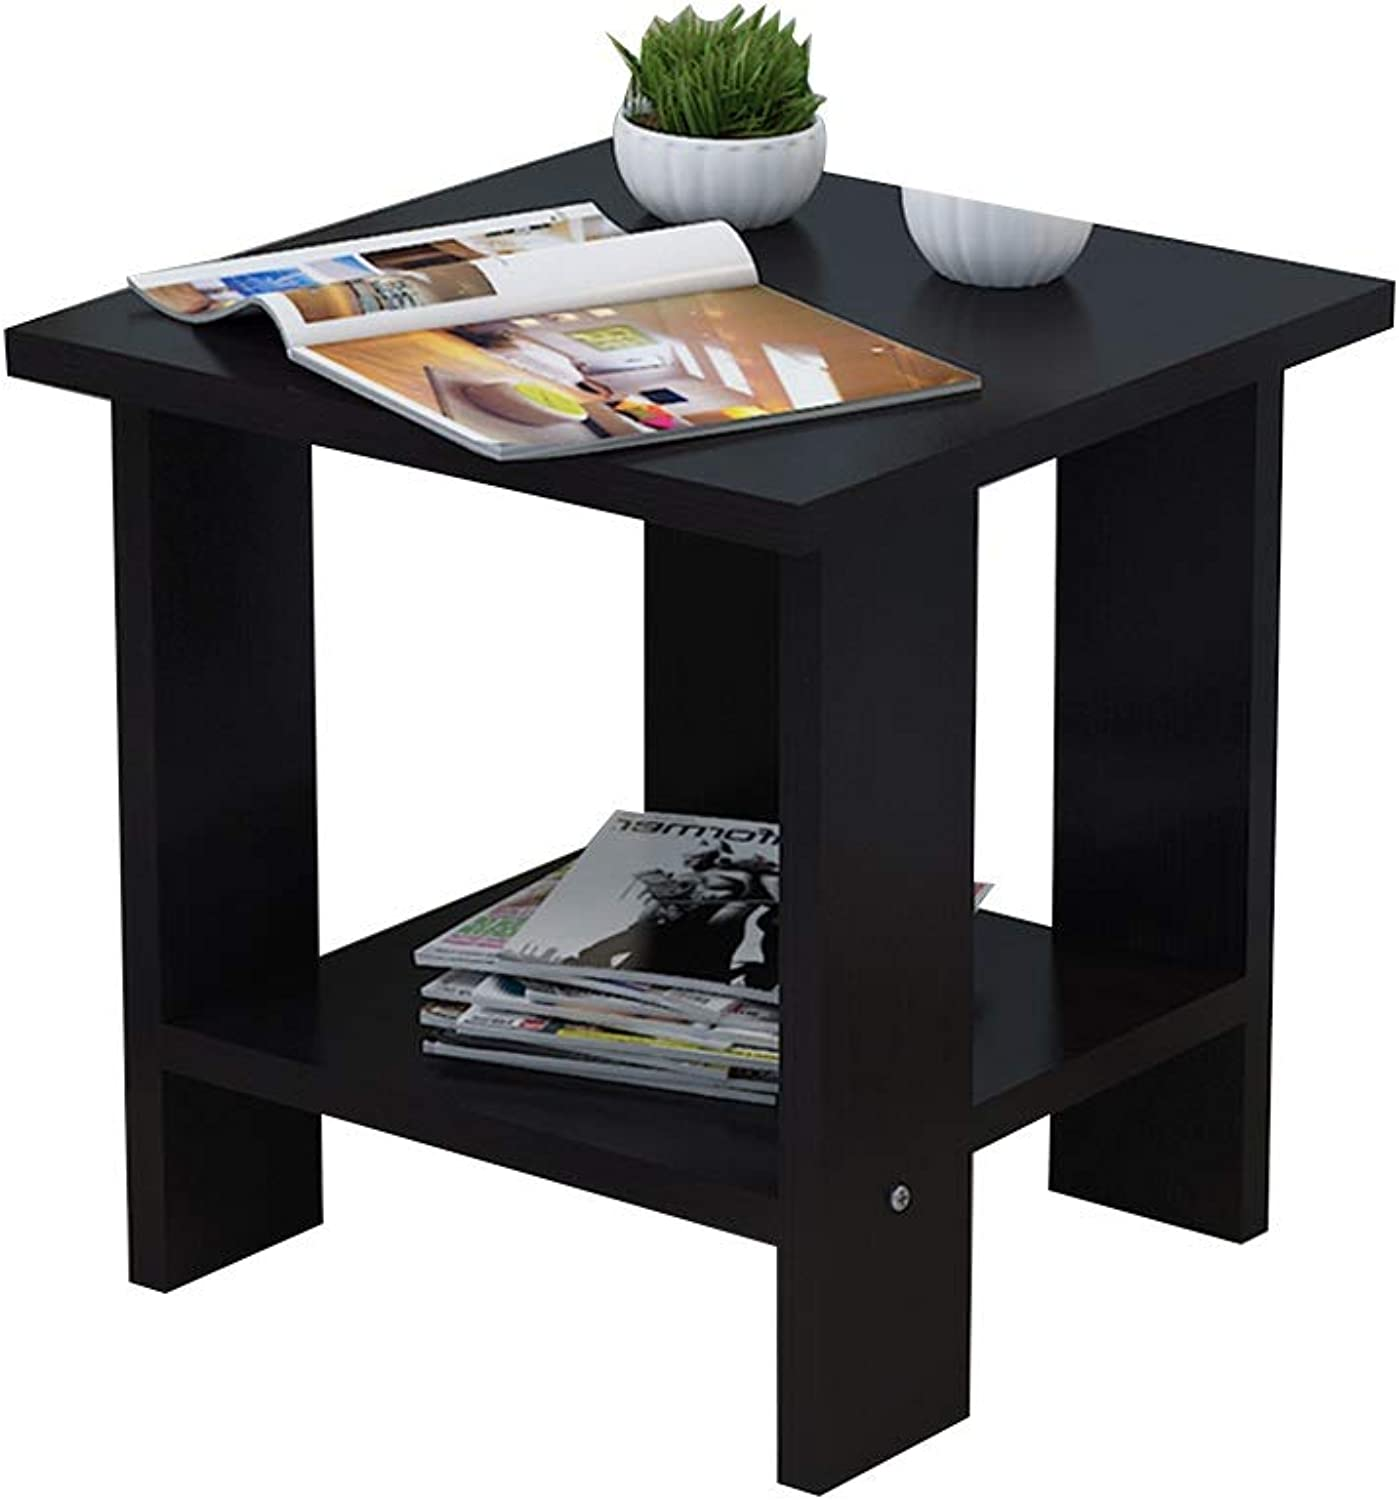 Coffee Table Side Table, Double Layer Storage Small Apartment Mini Solid Wood Telephone Table for Living Room Bedroom (Size   12  12  12.8 in)